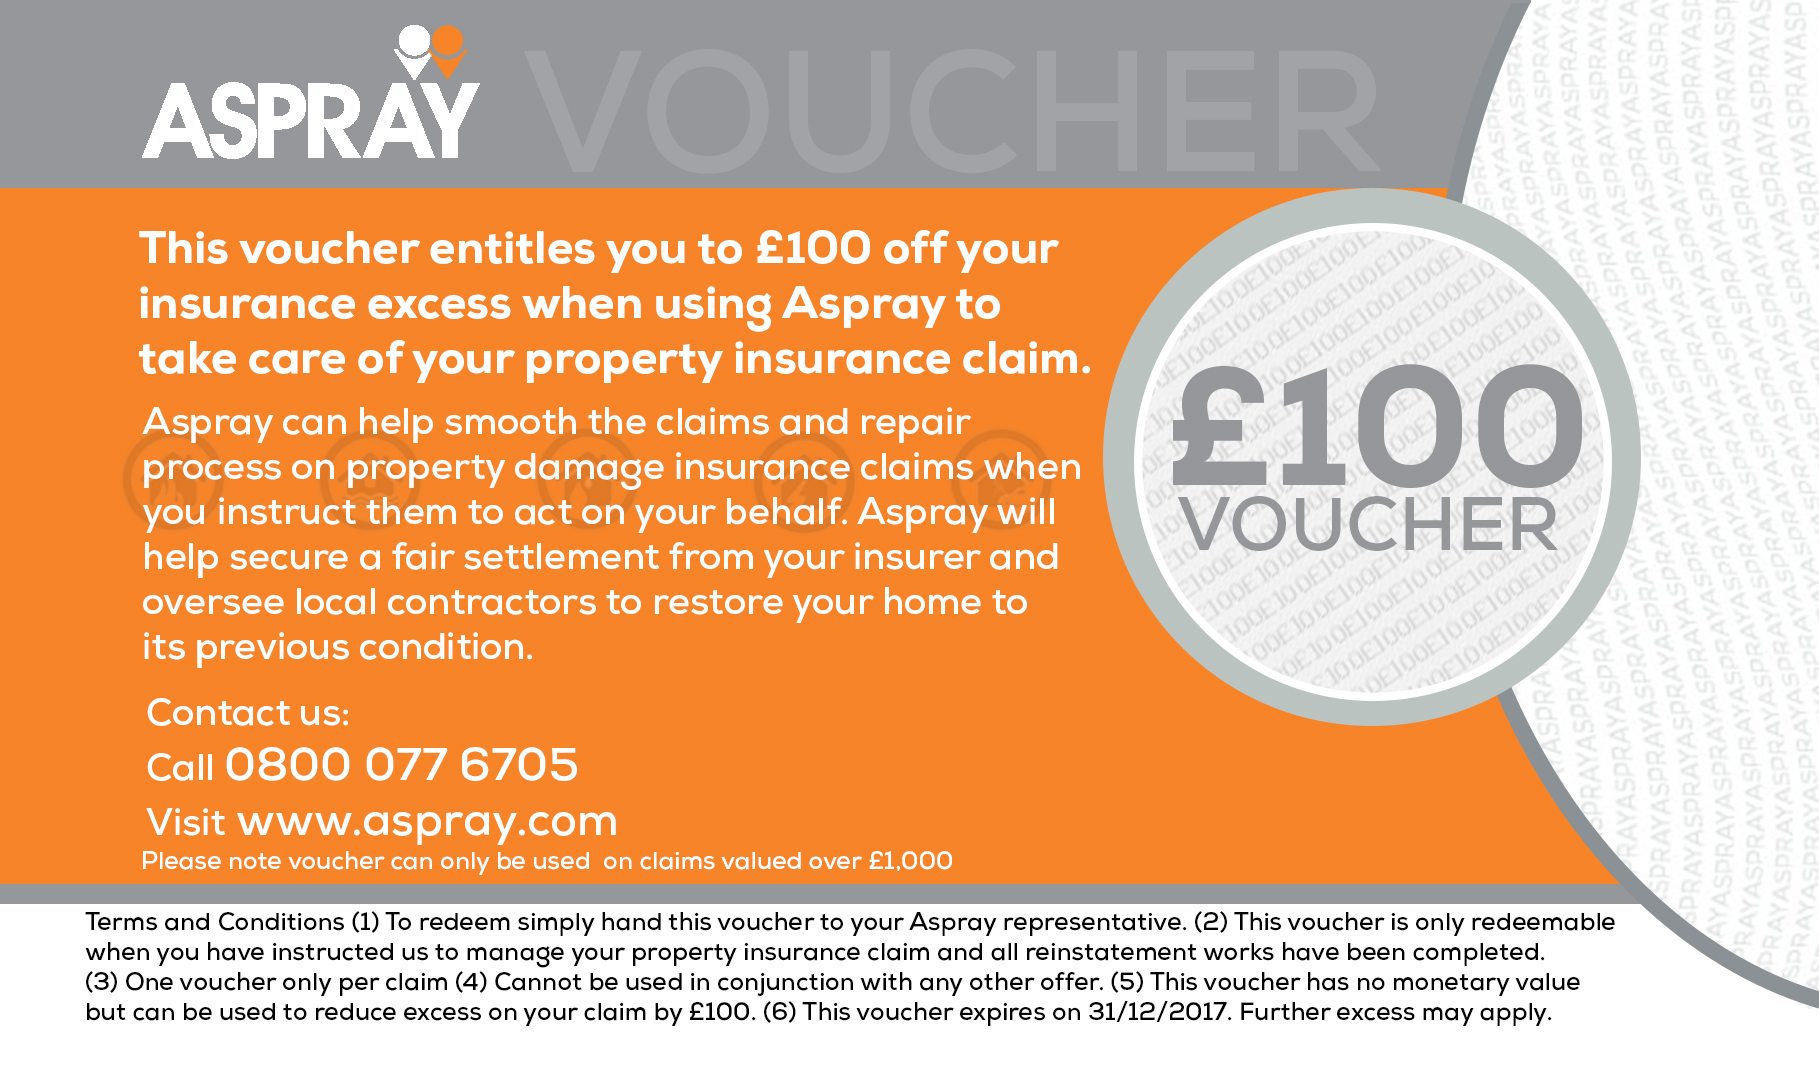 Aspray Electronic Voucher_New